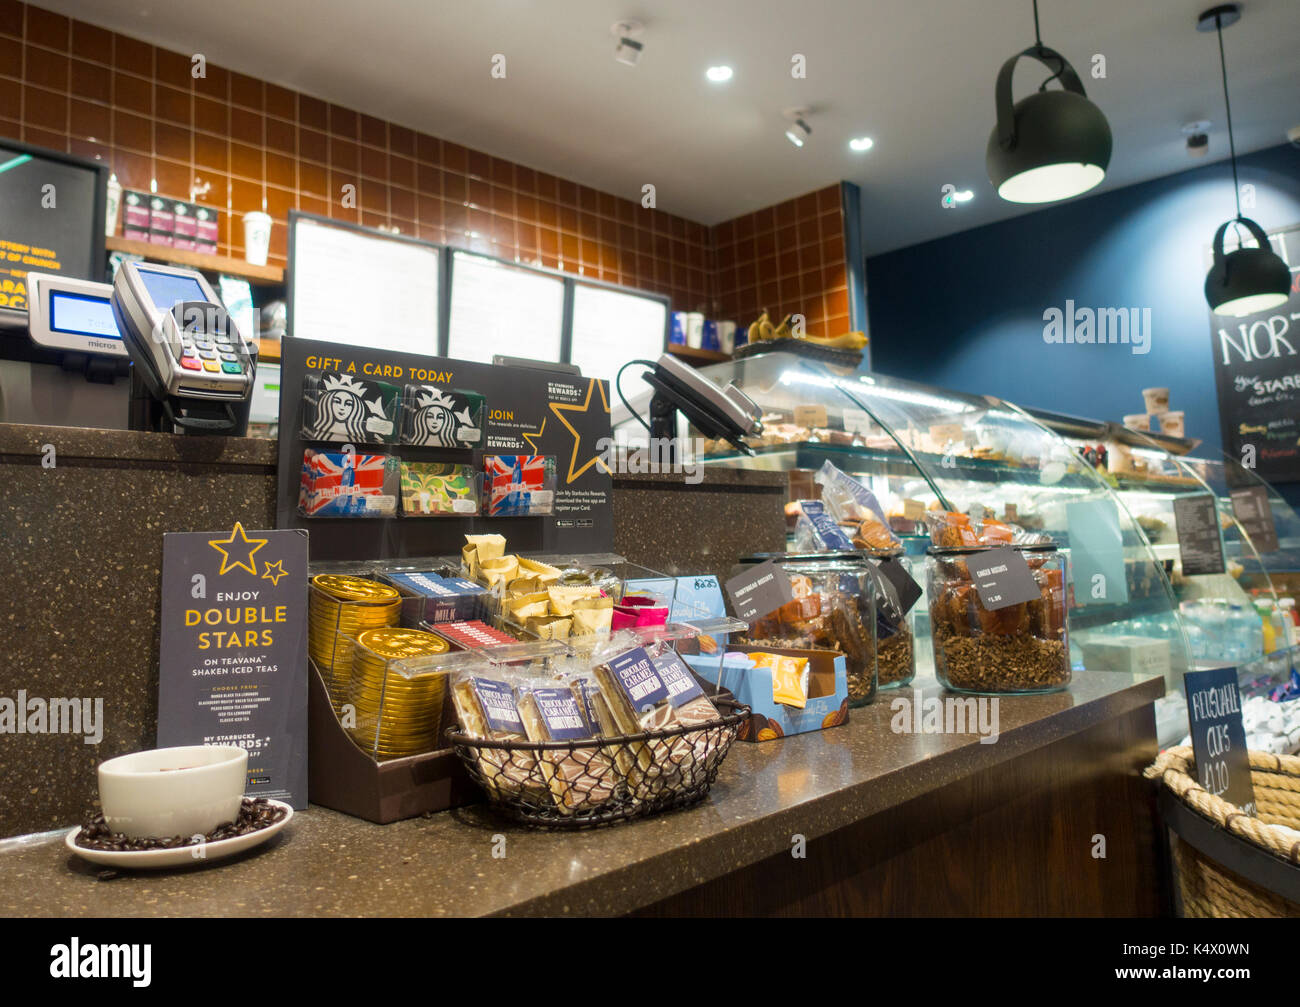 starbucks coffee counter display with products, cake, pastries and